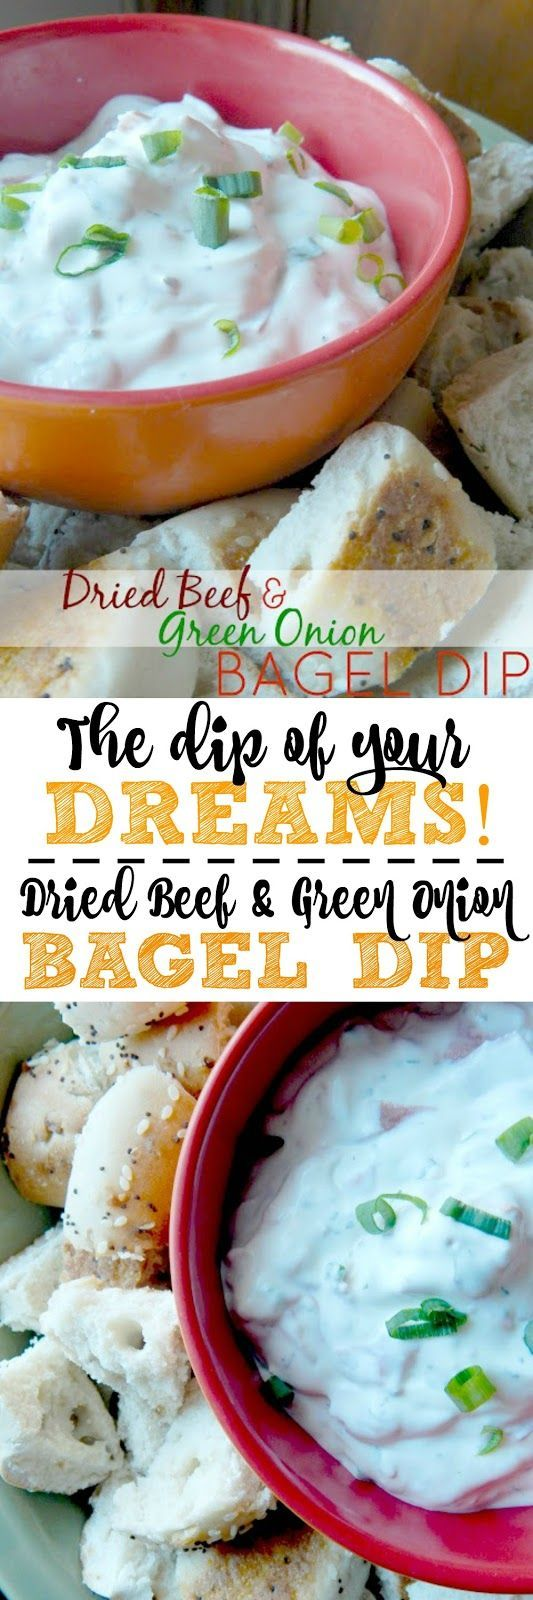 Dried Beef and Green Onion Bagel Dip. Great for any game, party or tailgate party!